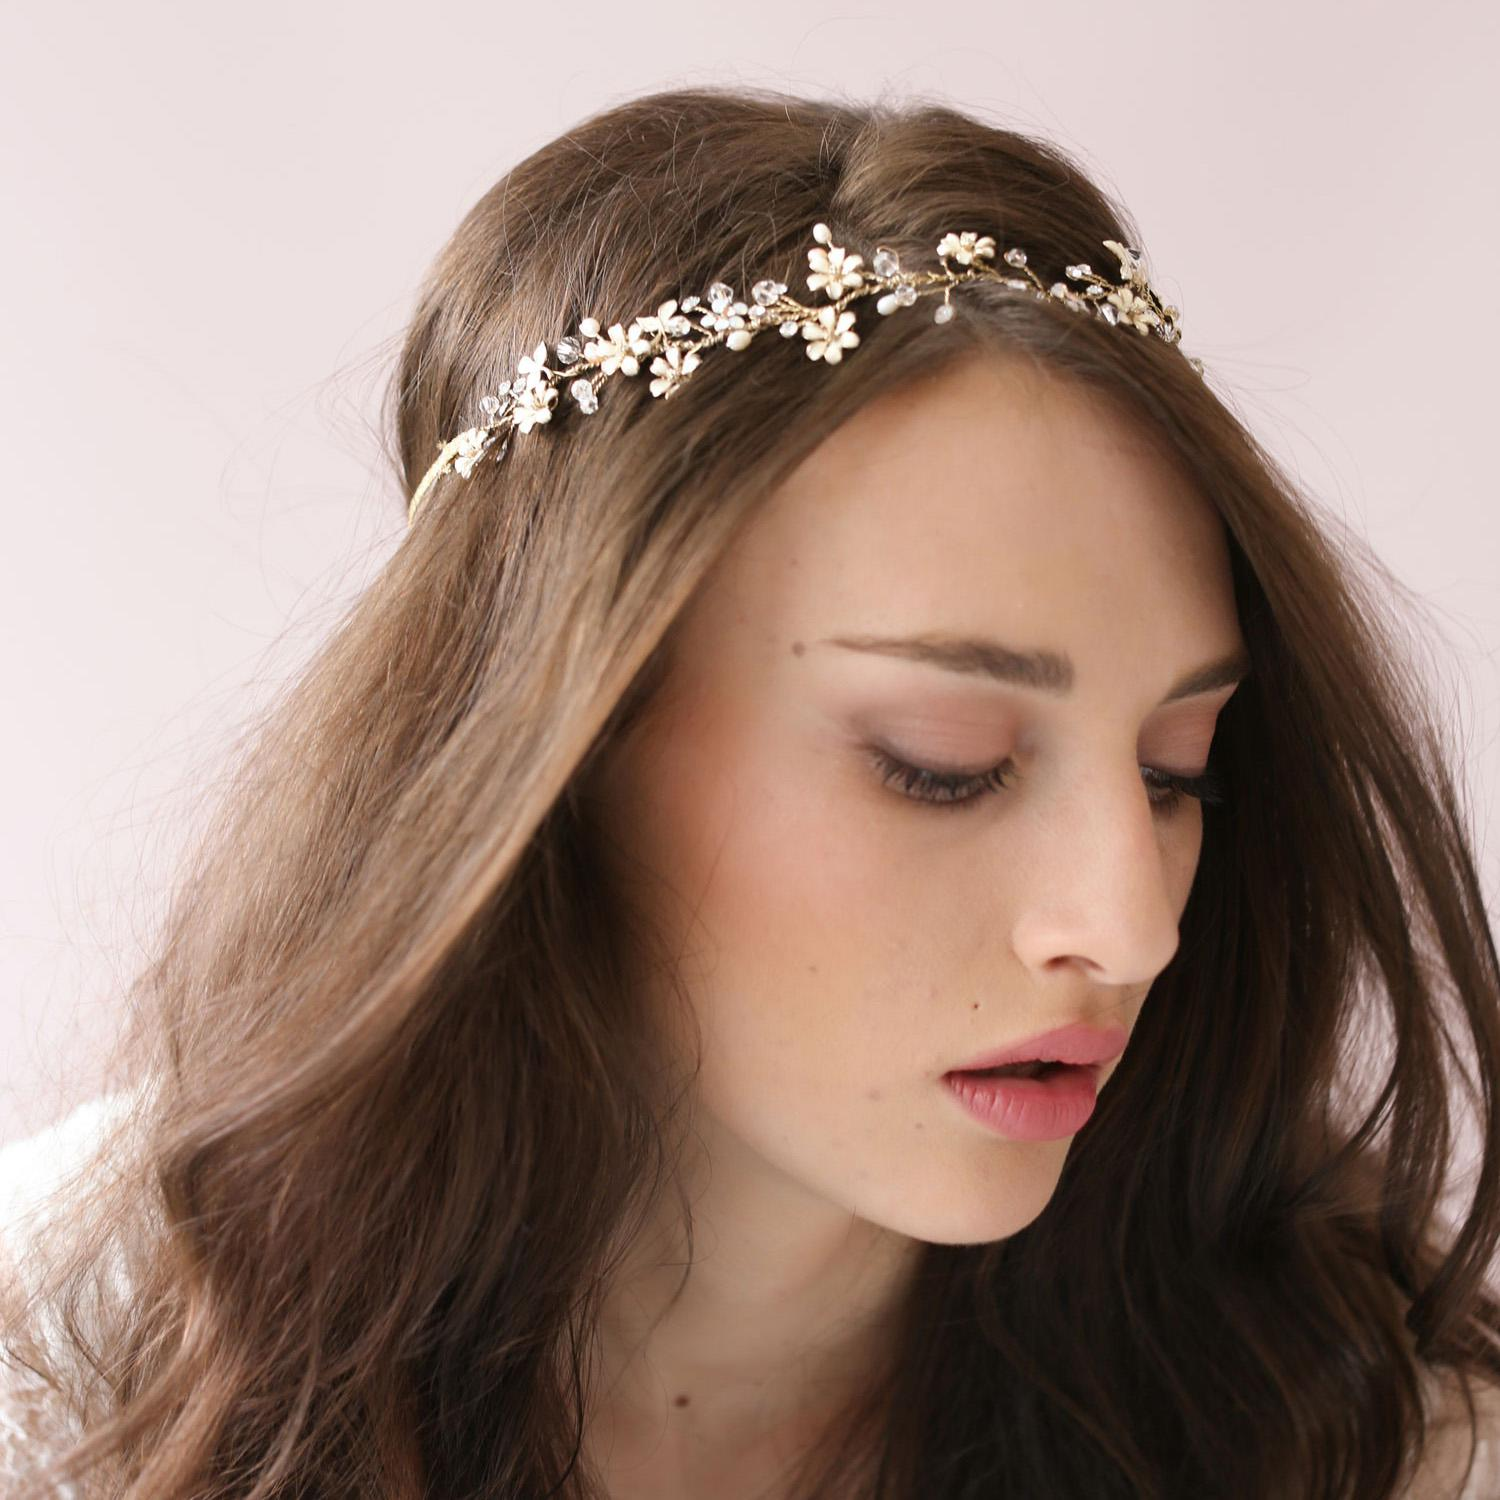 tiny enamel blossom crystal hair vine bridal hairband acessories